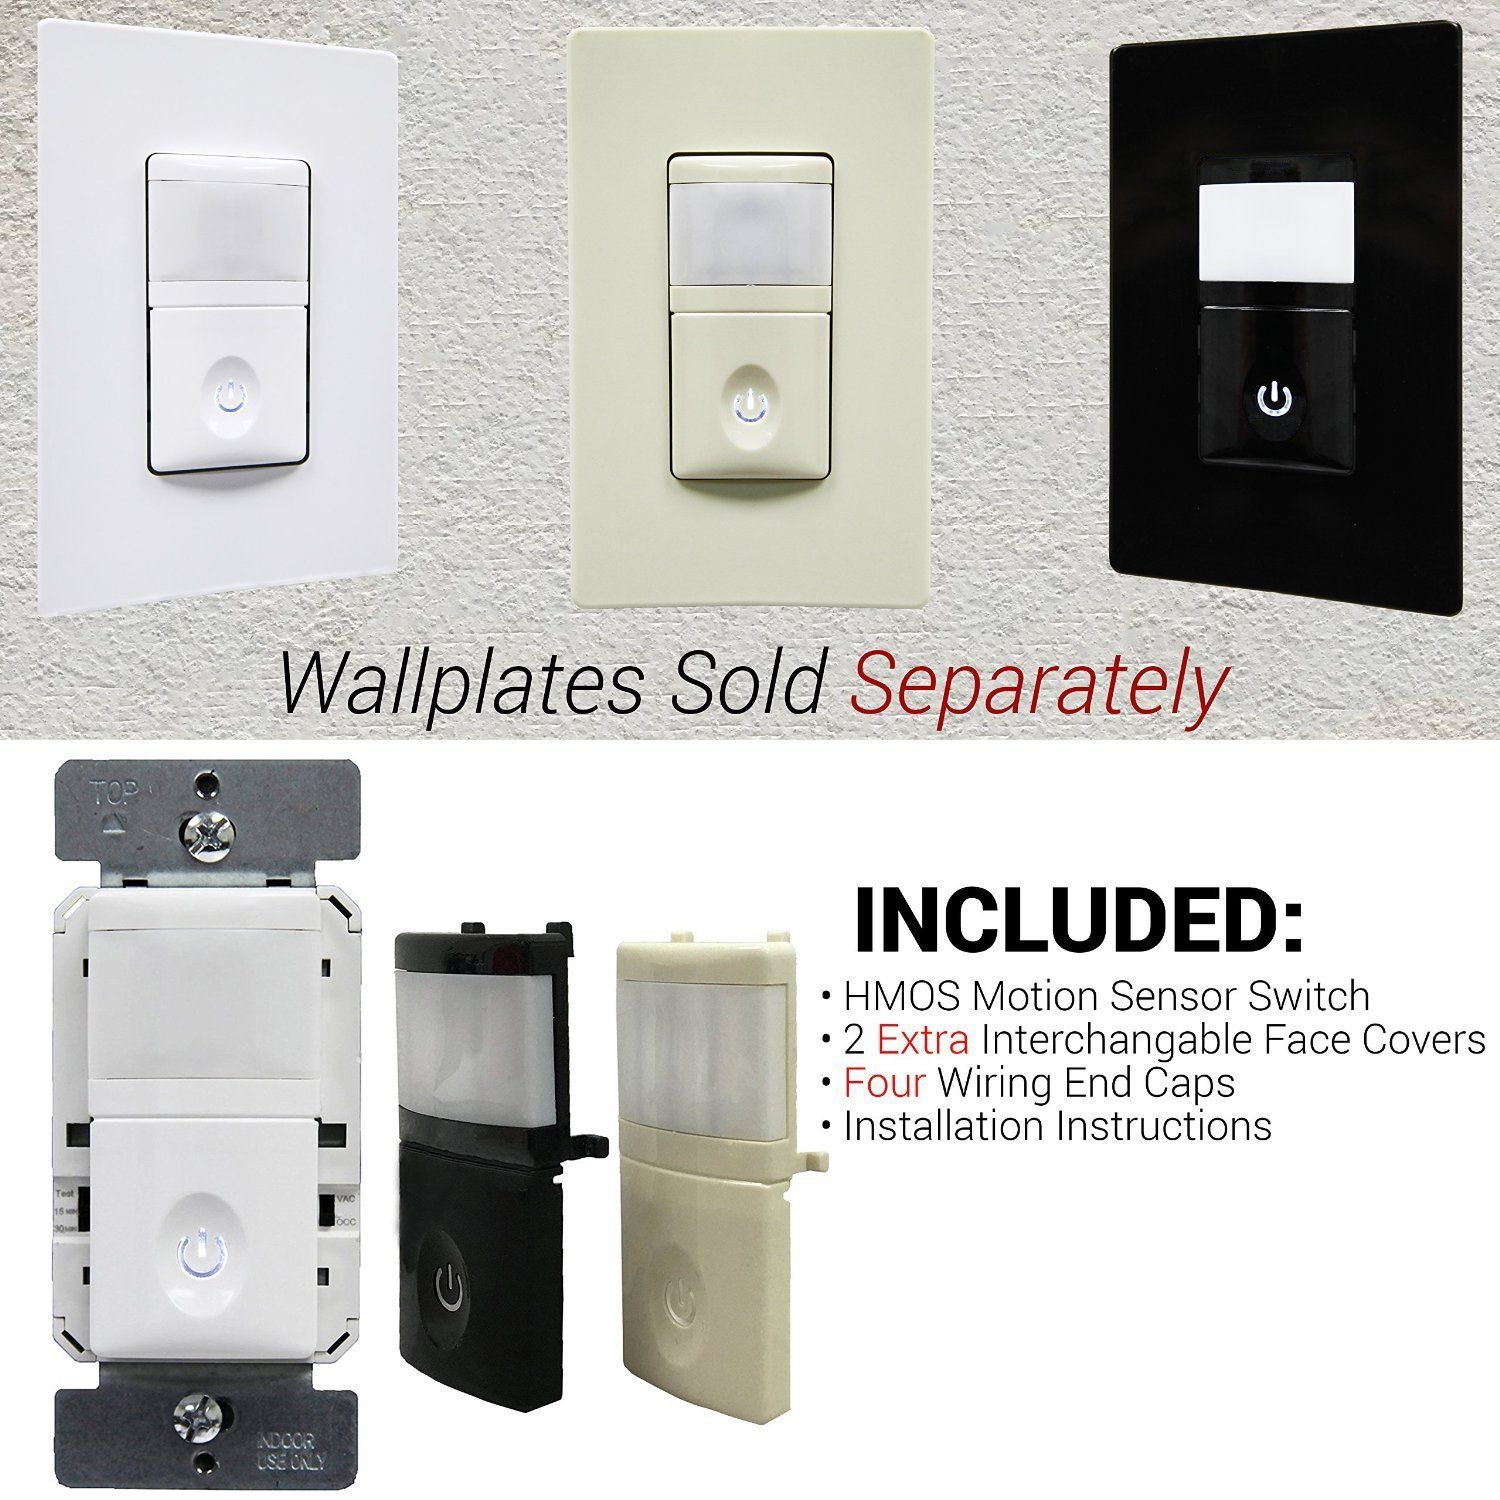 Enerlites Hmos Pir Occupancy Vacancy Motion Sensor Wall Switch Wiring Instructions Smart Led Night Light